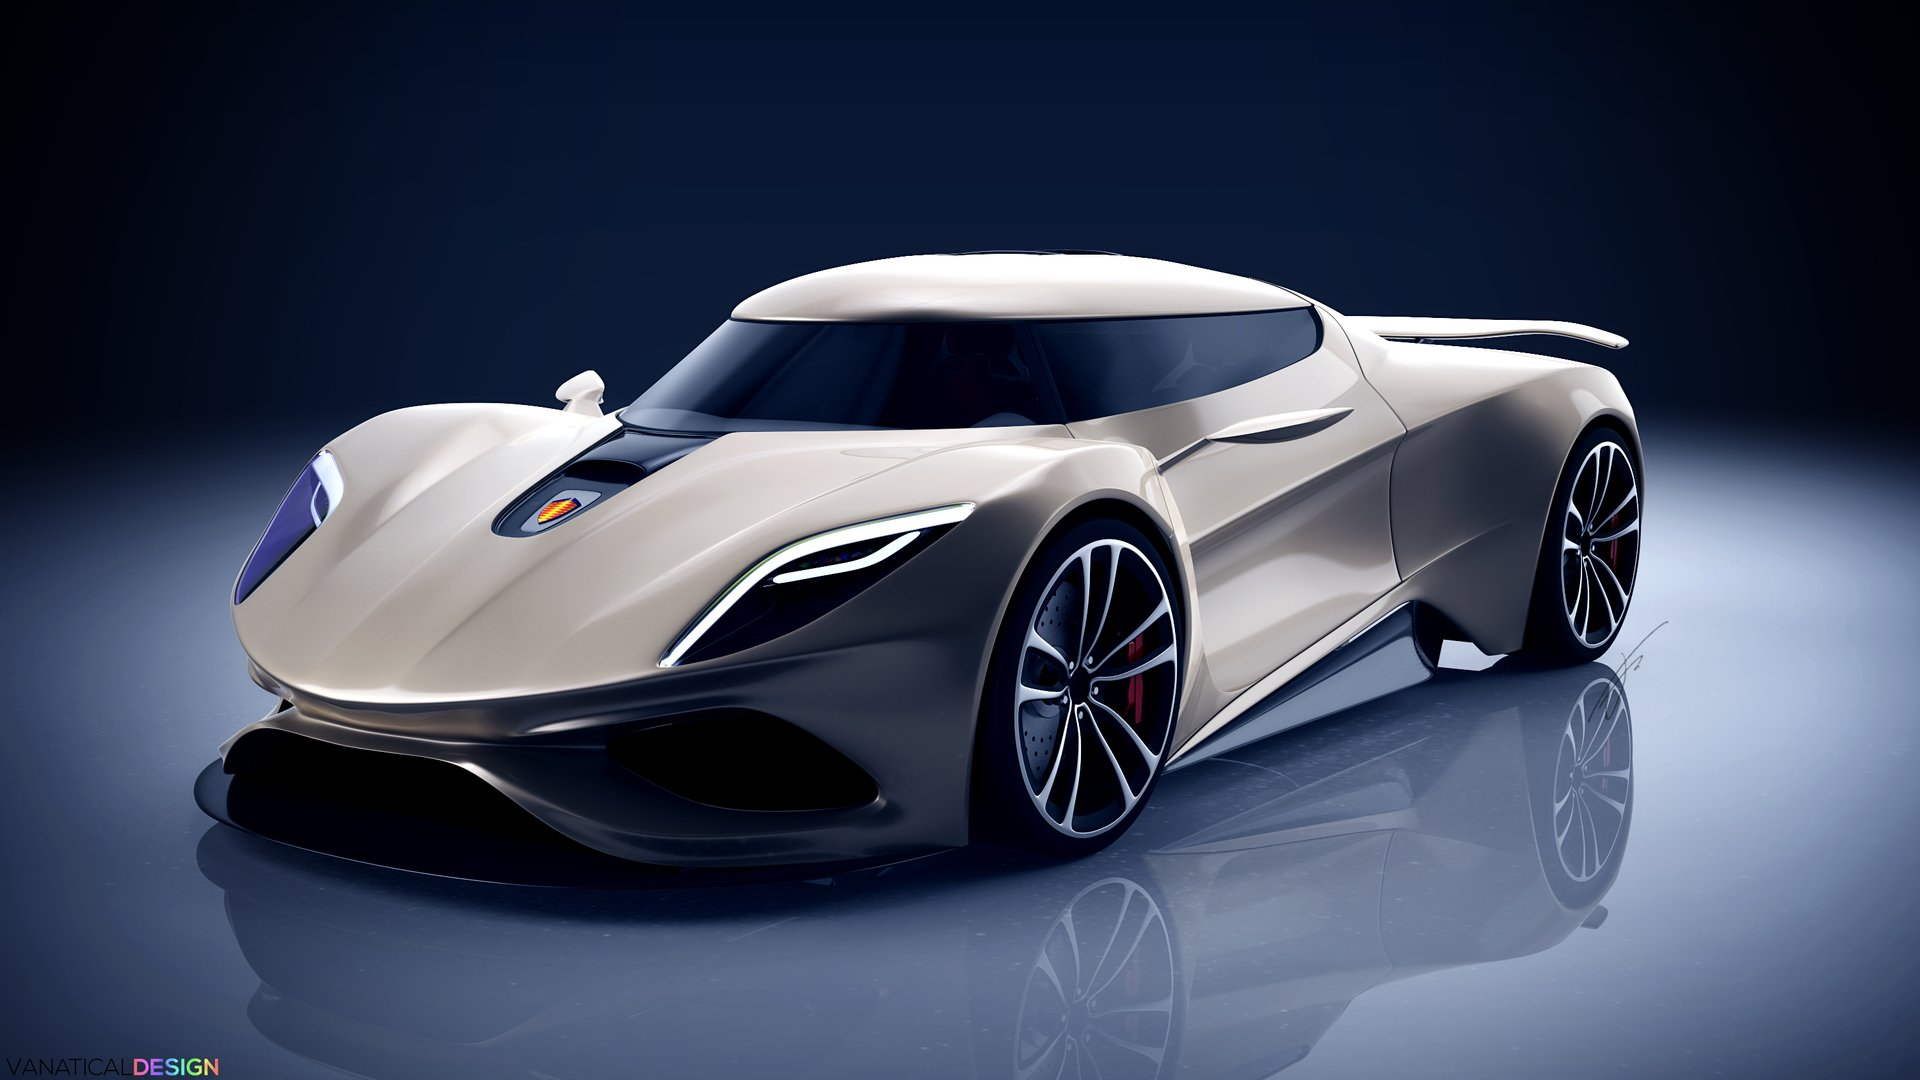 Koenigsegg Legera is a 'Baby Koenigsegg' Eager to Battle ...